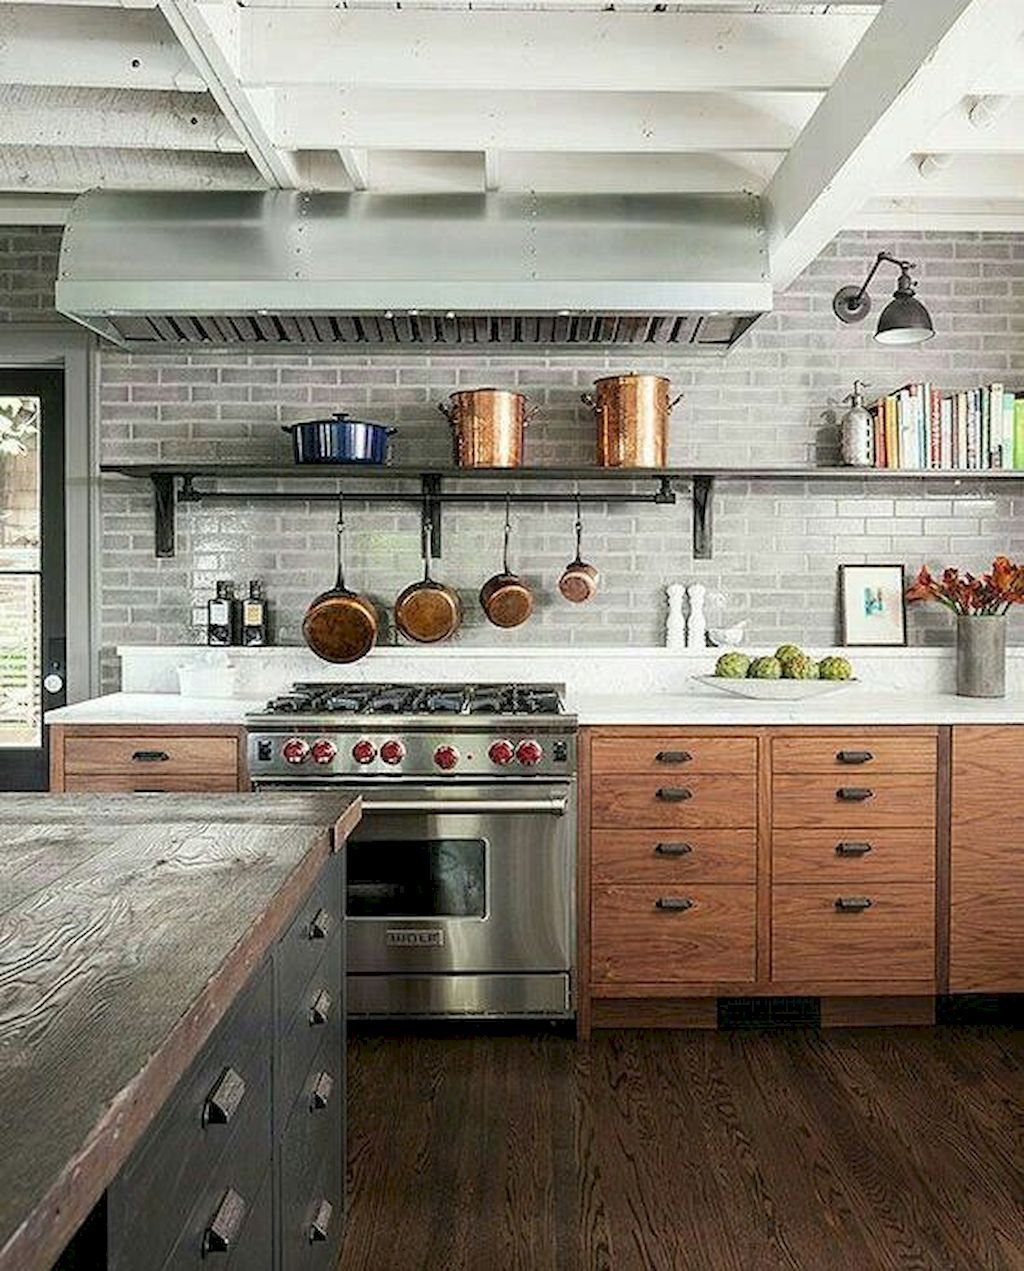 60 awesome modern kitchens ideas remodeling on a budget rustic modern kitchen industrial on kitchen ideas on a budget id=29894